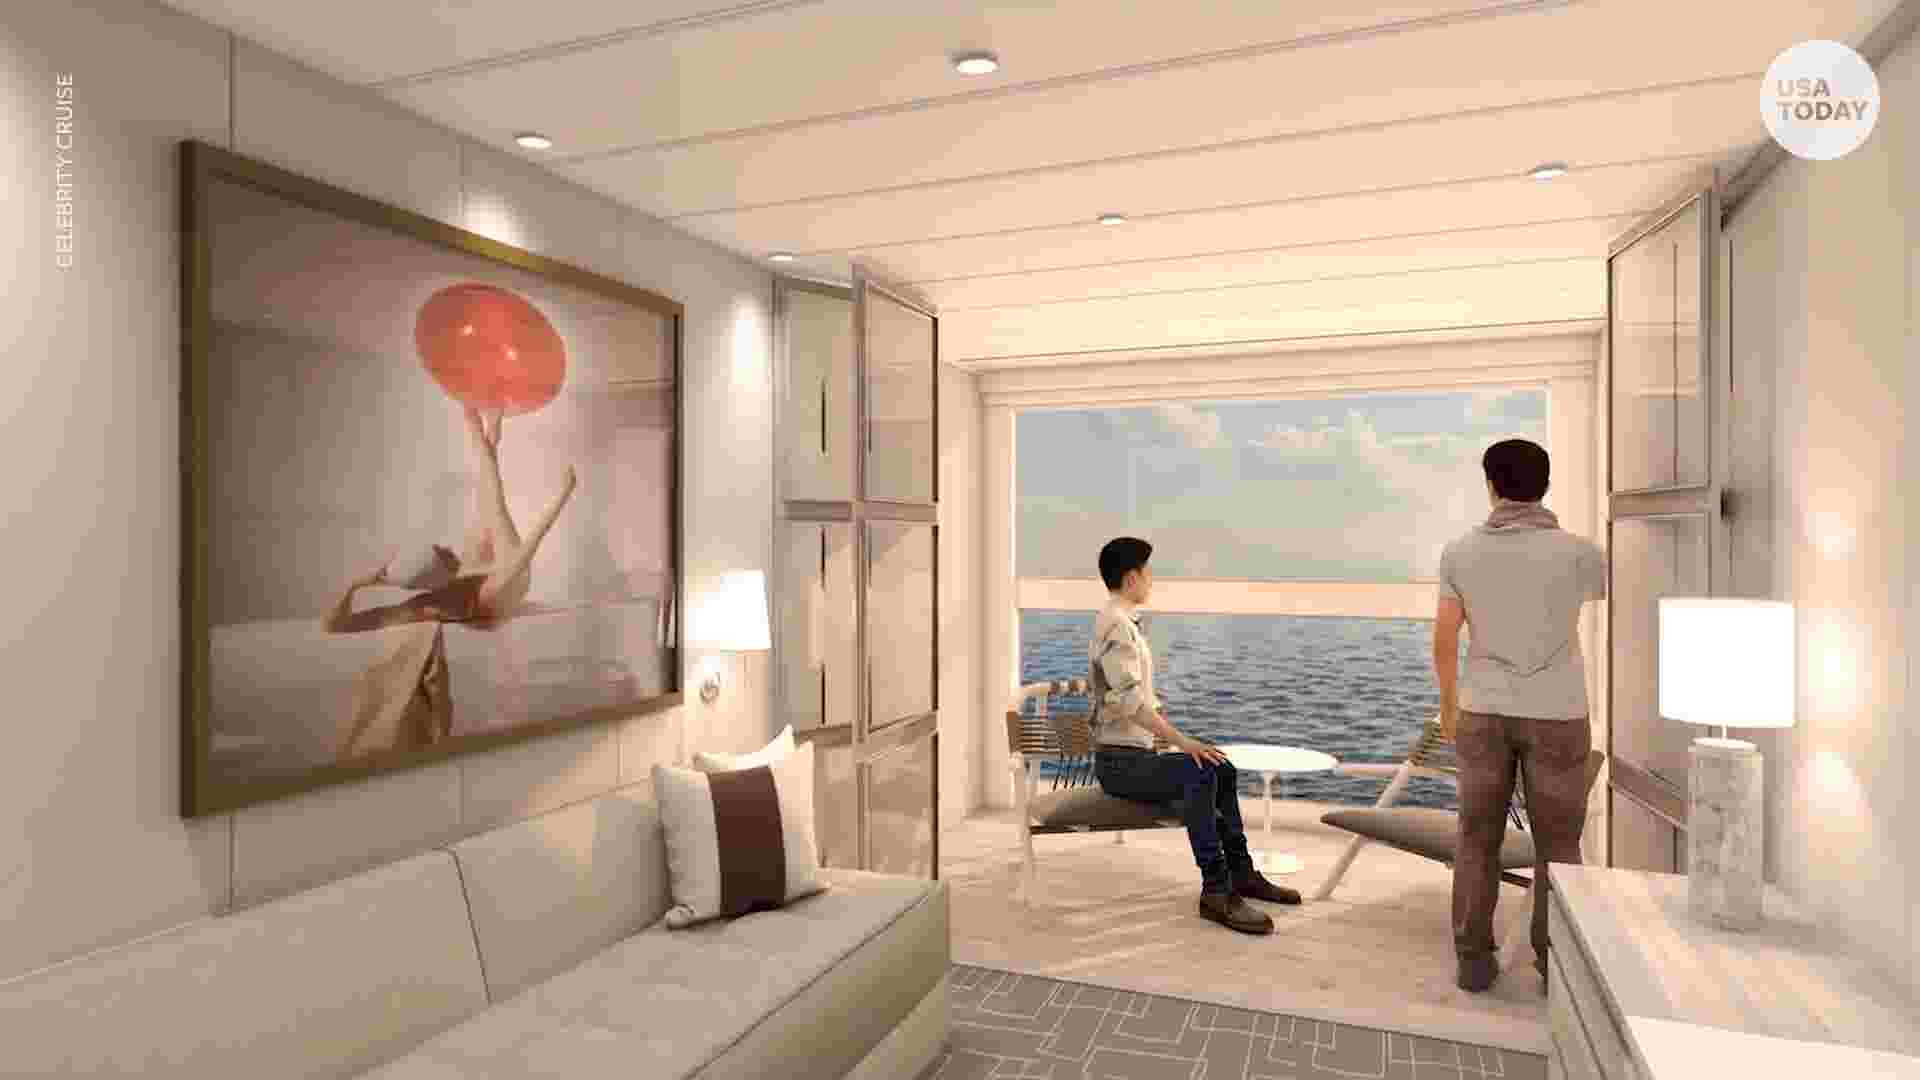 d1727e2ff2 The edge of innovation  New cabin design on Celebrity ship brings  floor-to-ceiling windows